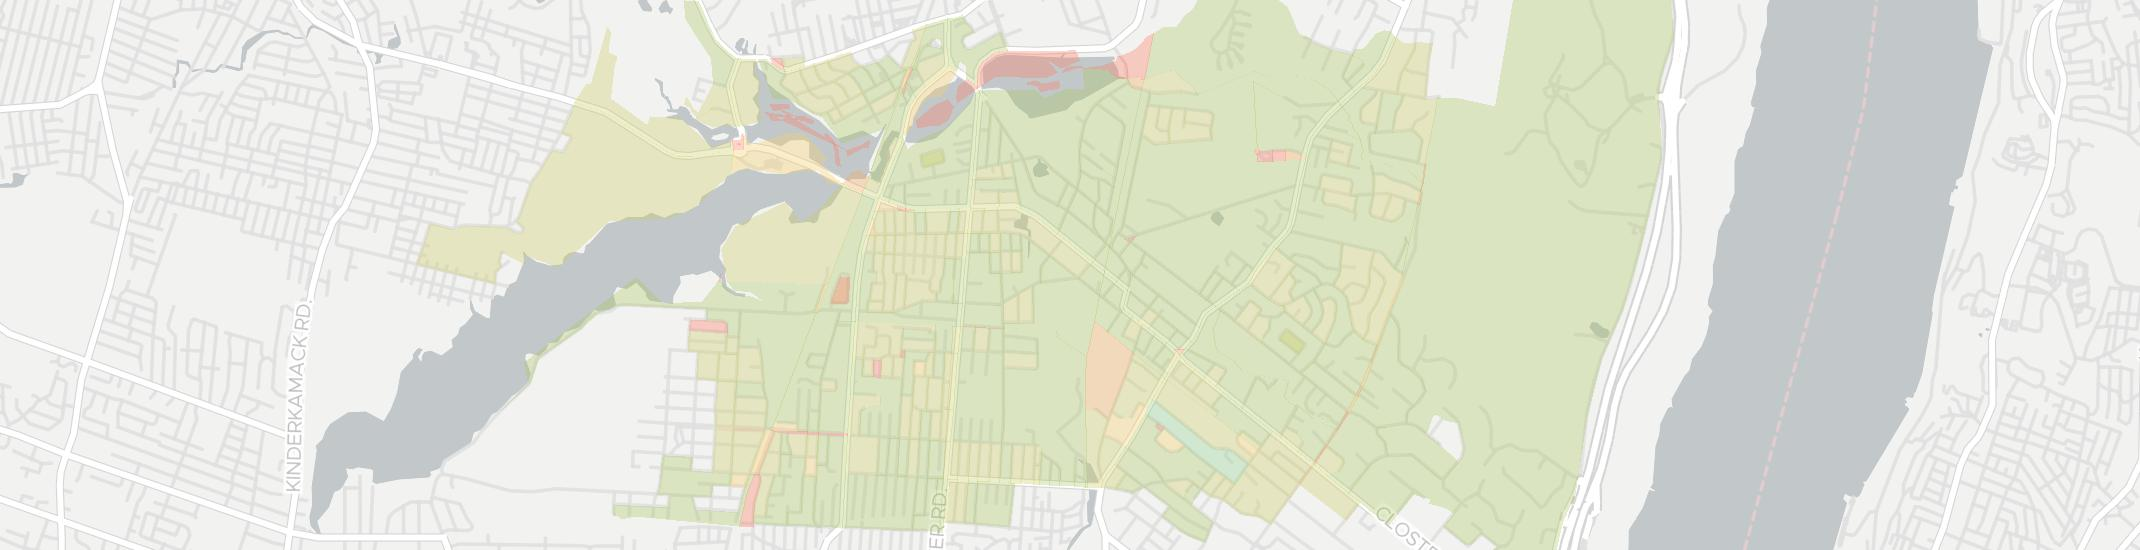 Closter Internet Competition Map. Click for interactive map.